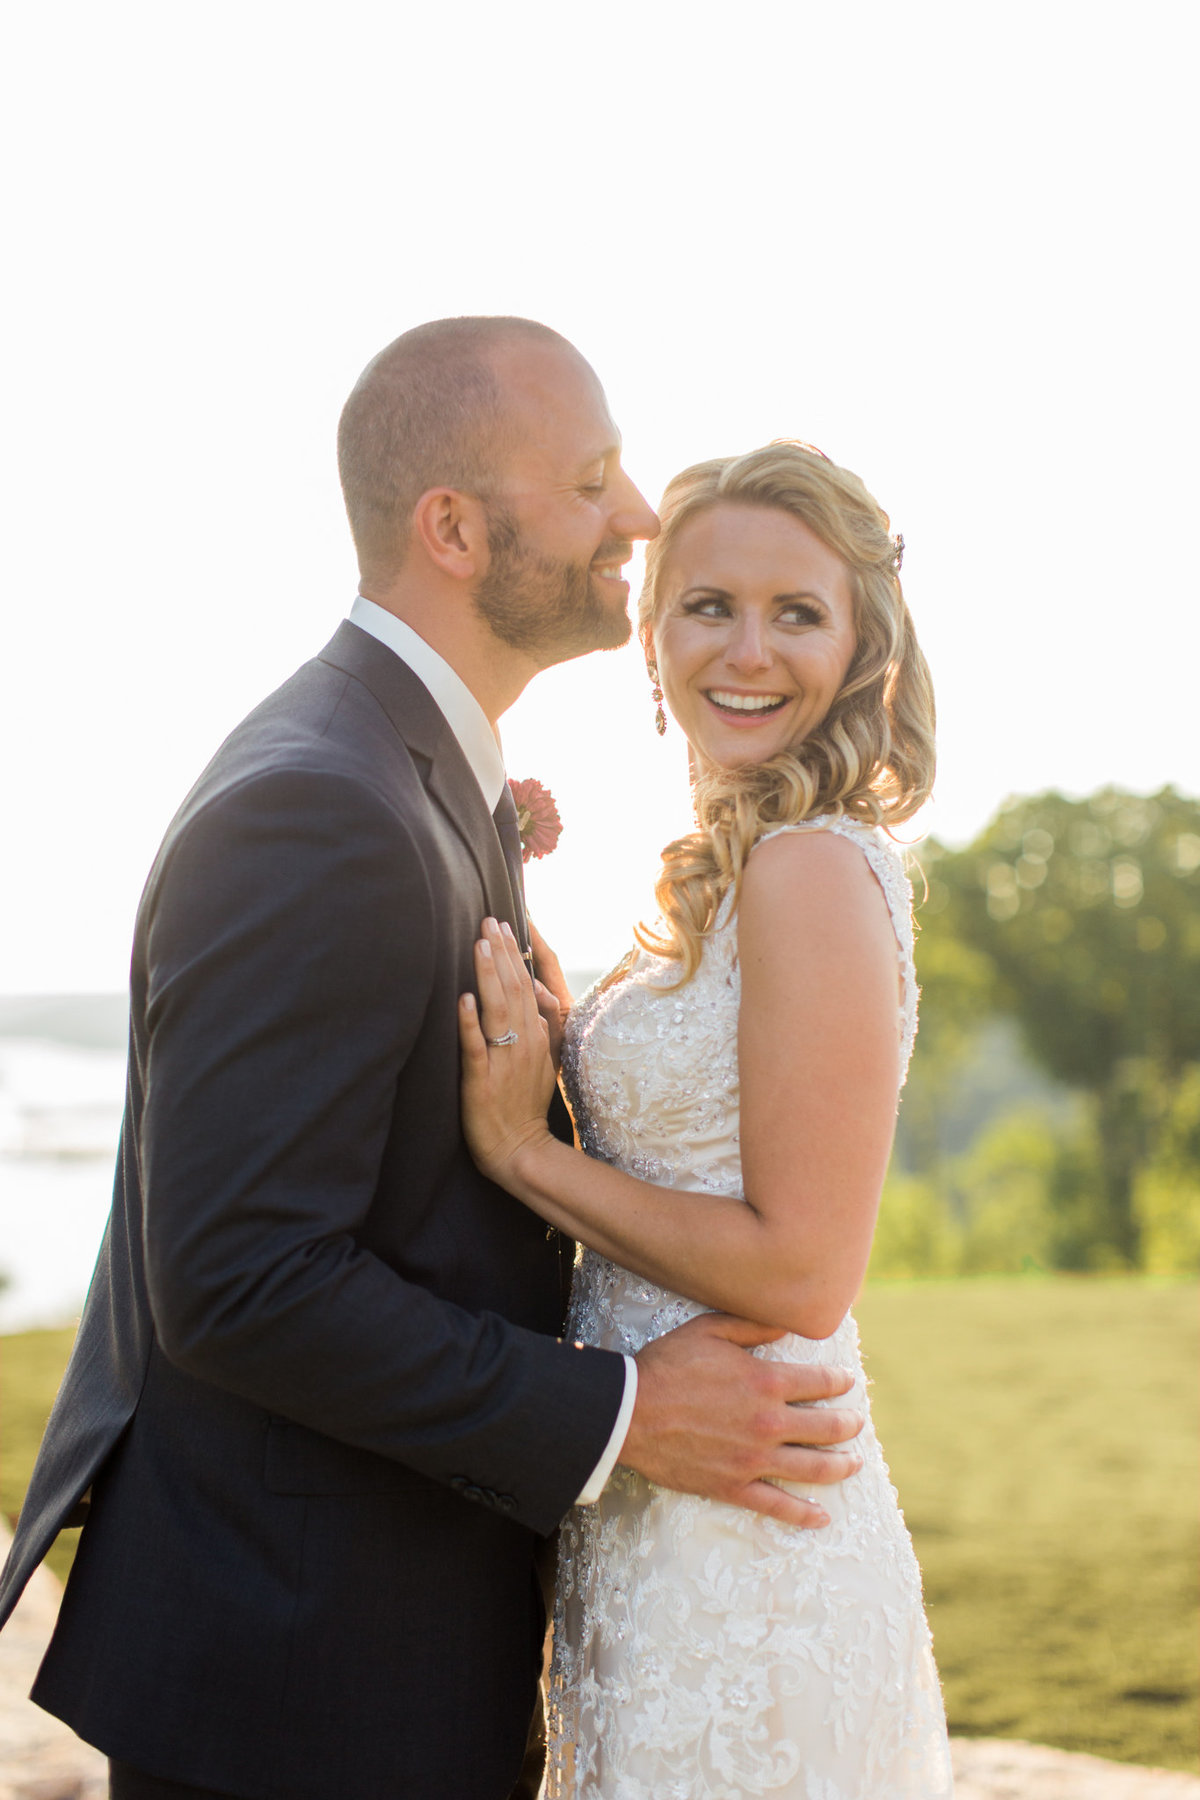 wedding-photography-springfield-mo-39